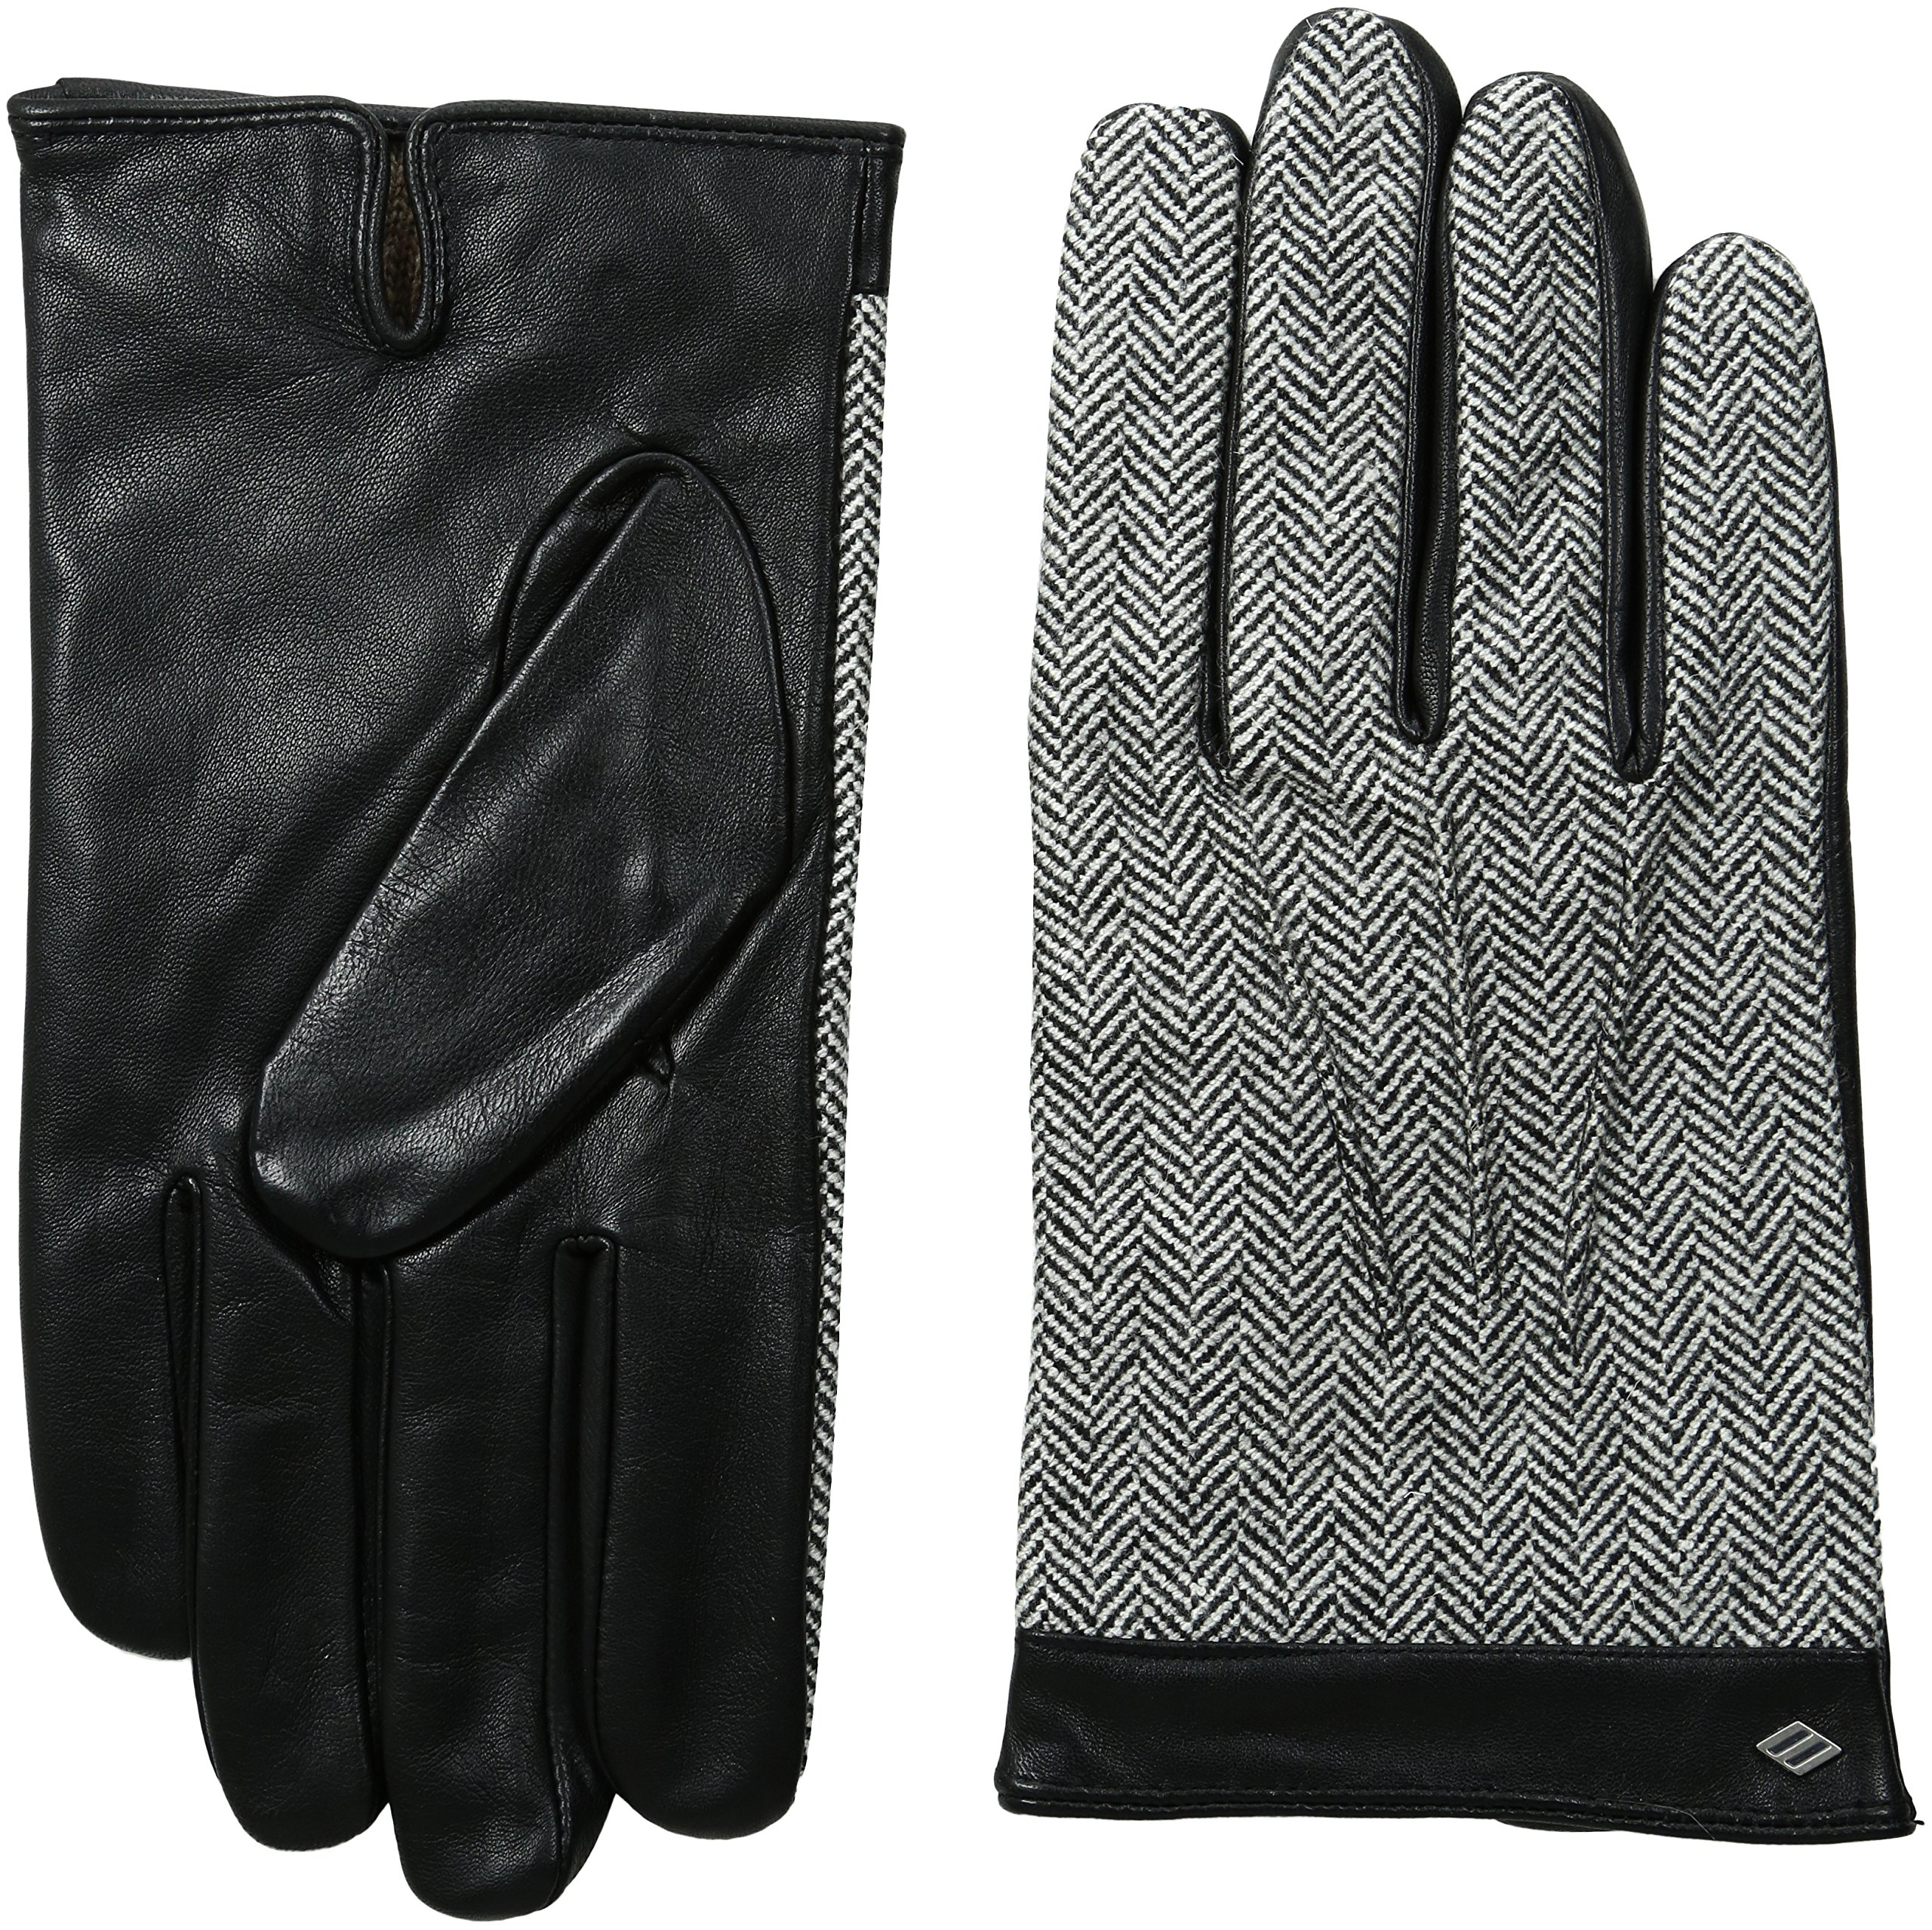 Joseph Abboud Men's Tweed and Fine Leather Gloves with Lambswool Lining, Black/Tweed, Large